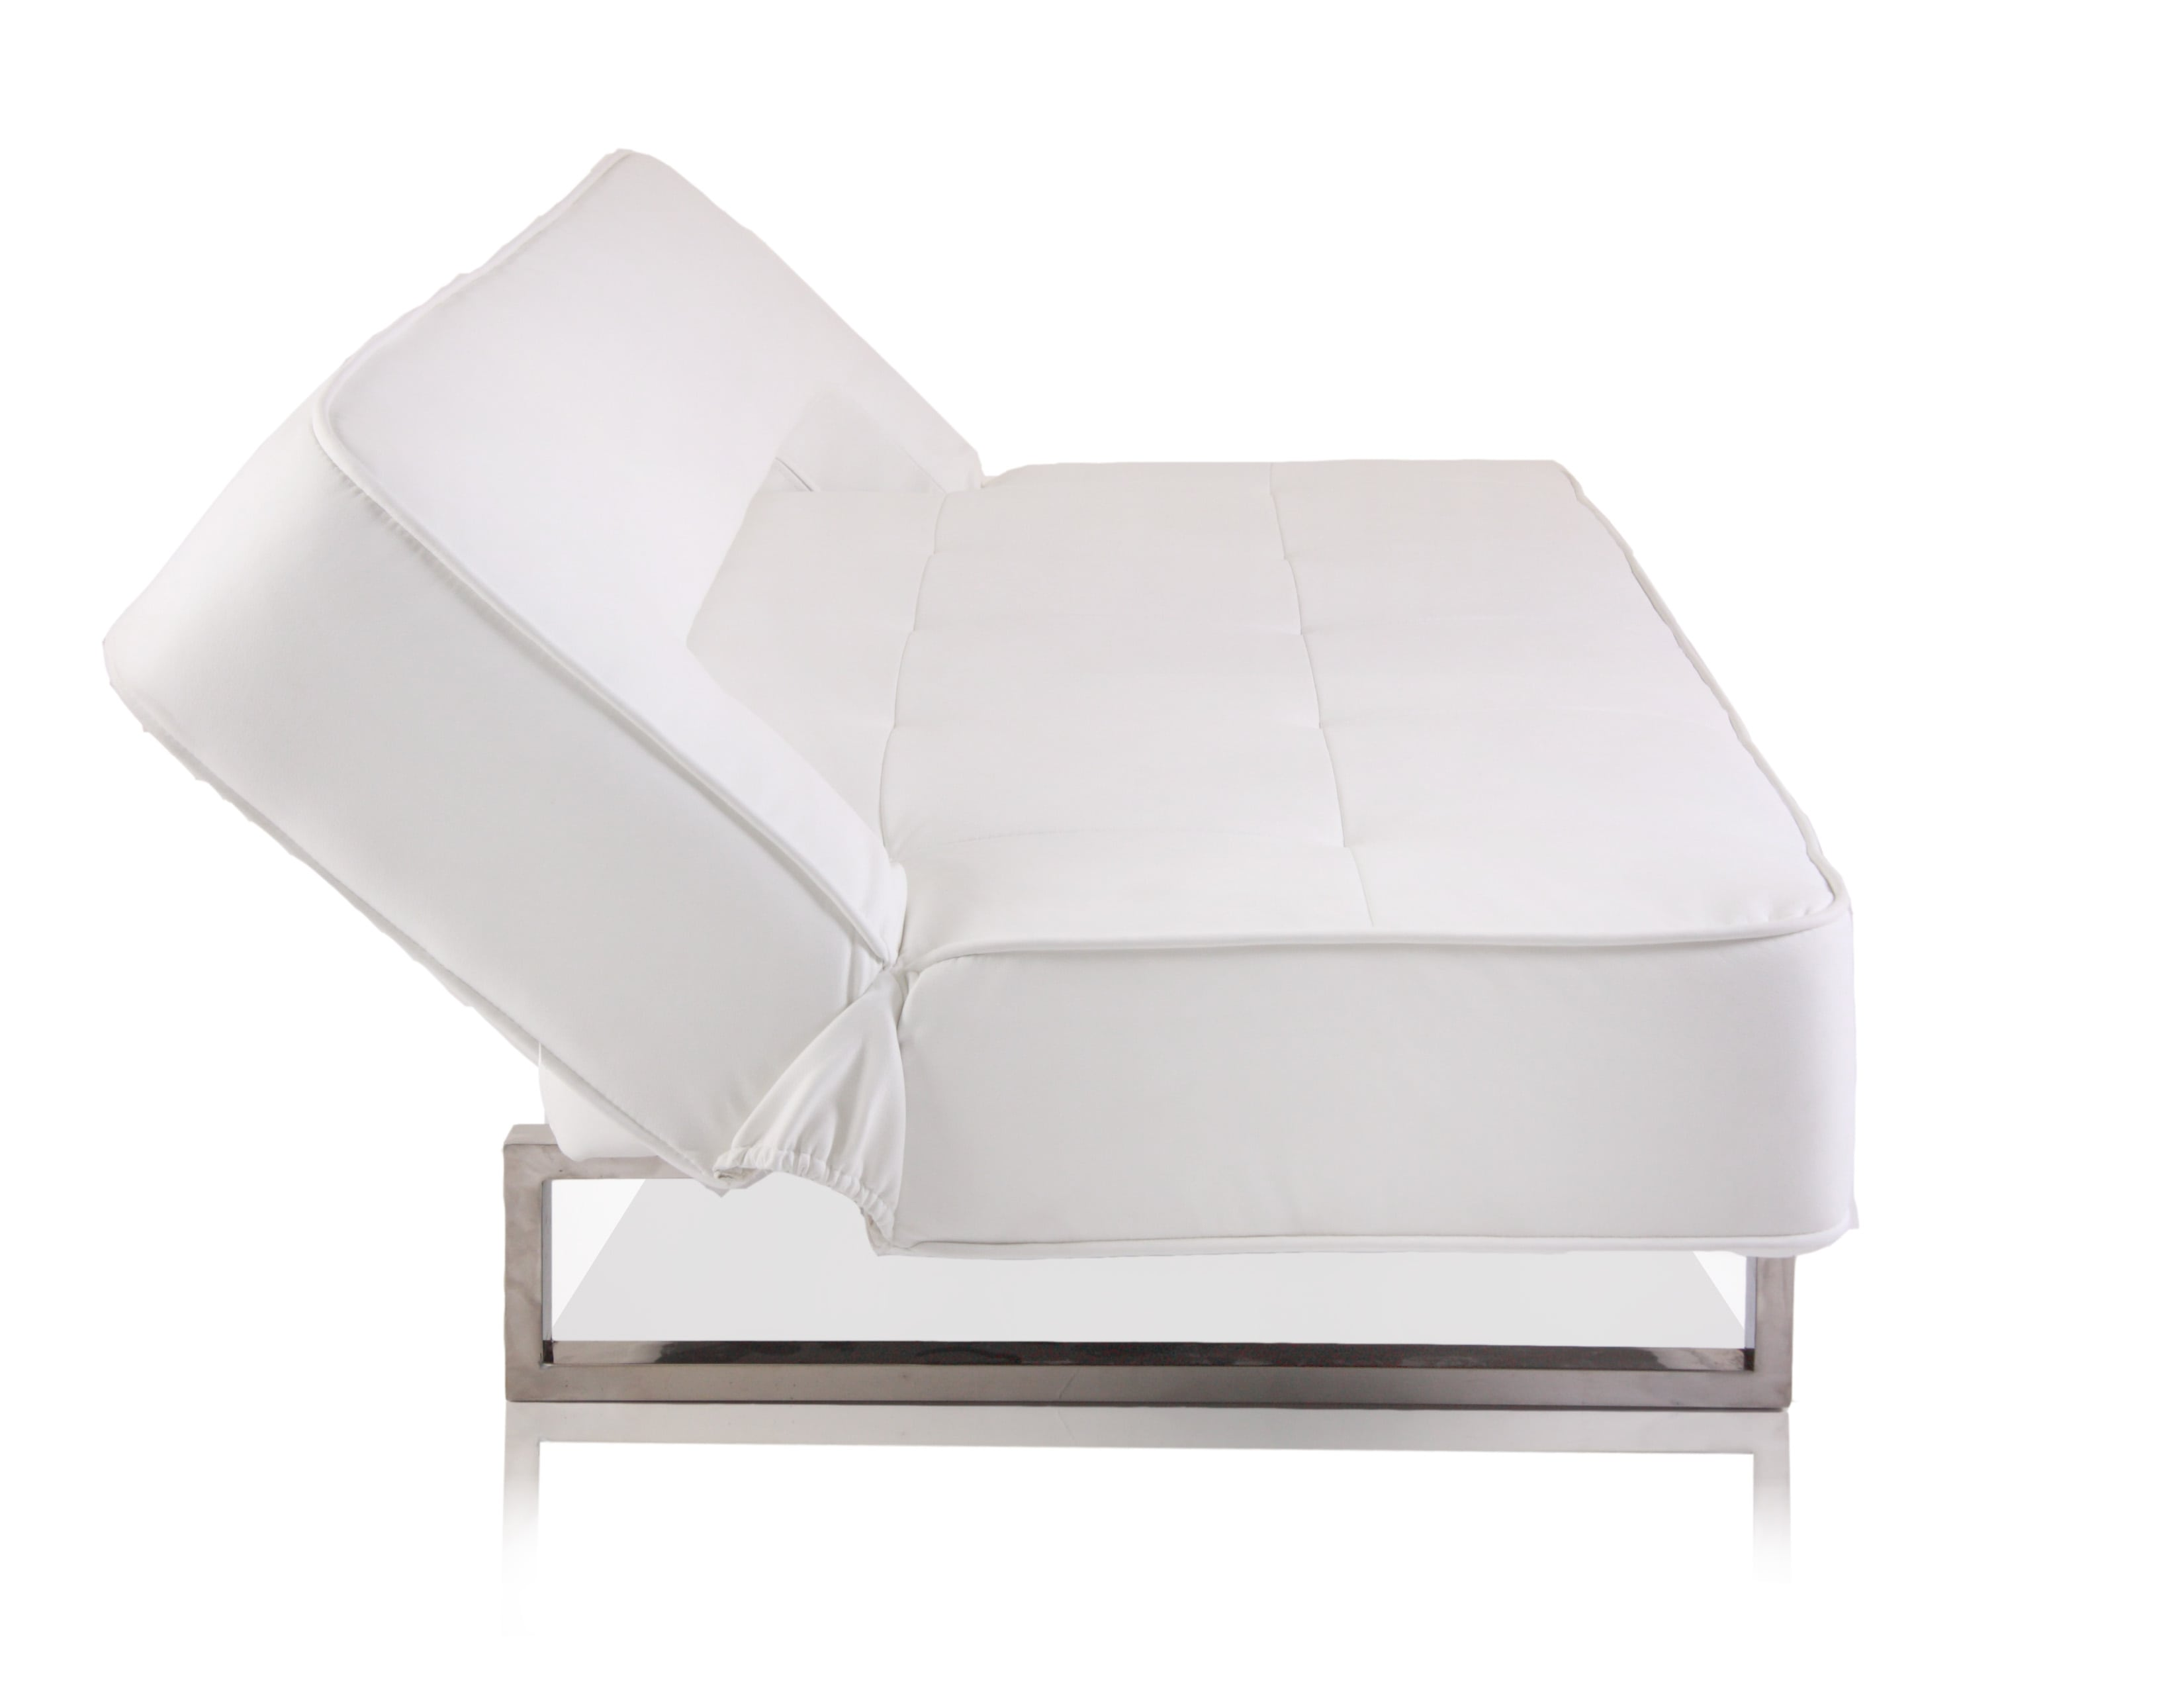 Miamo 3 seater eco leather modern sofa bed white for White divan bed